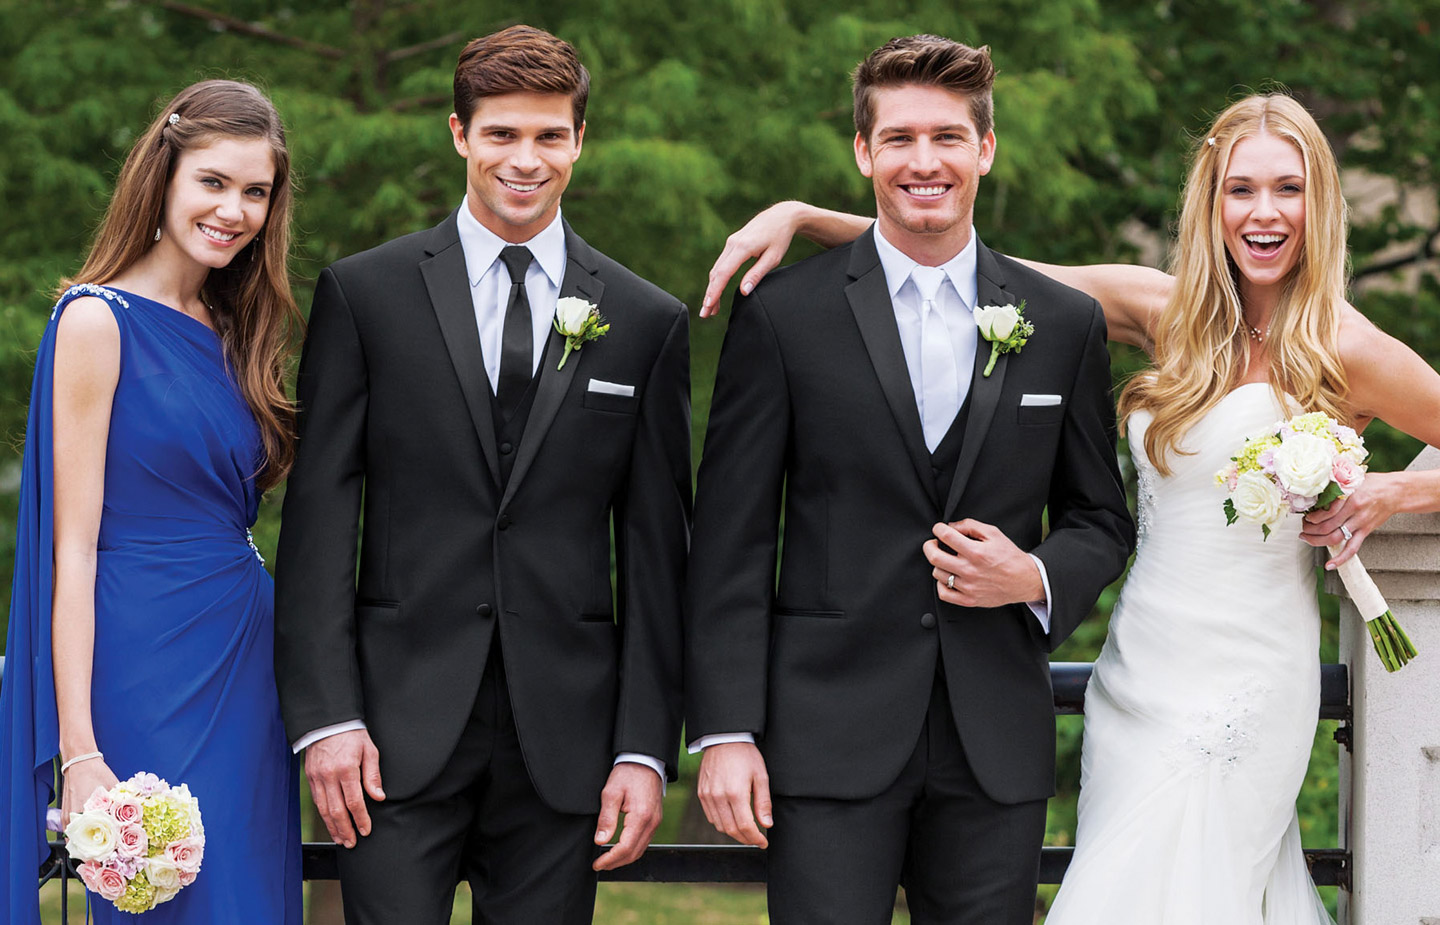 formal wear tuxedo rental in holdrege, ne | double d cleaners HCLTKKY